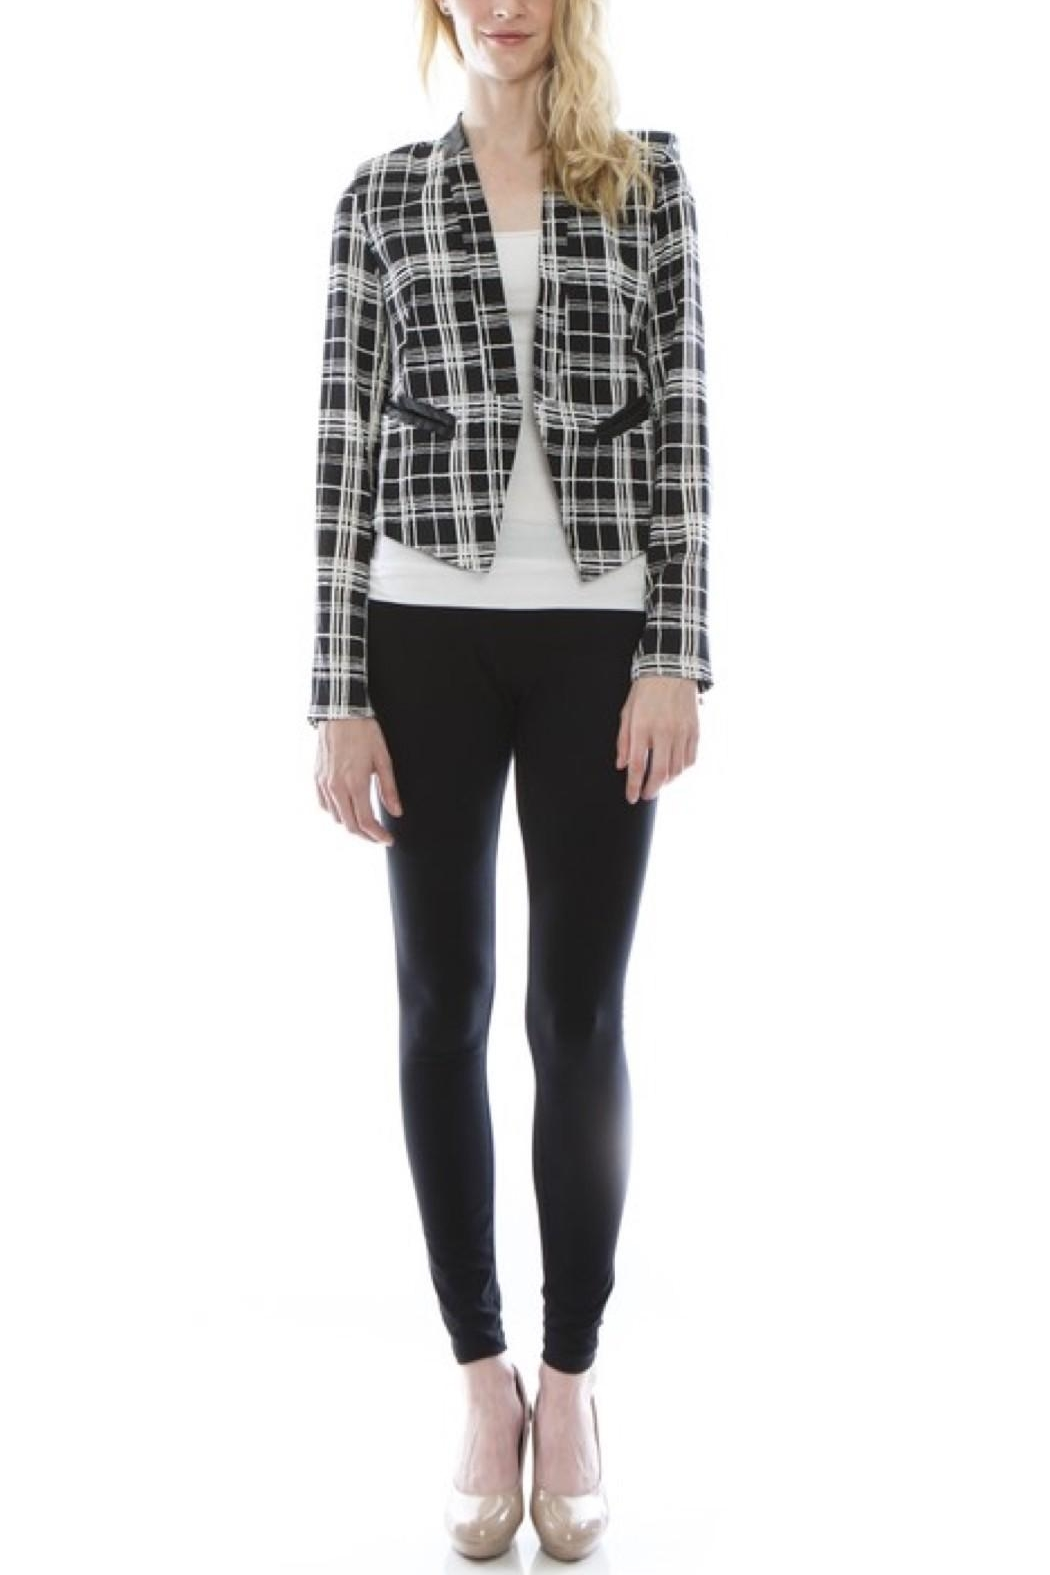 eed7b2a351 virgin only Plaid Cropped Blazer from Orange County by OC Avenue ...